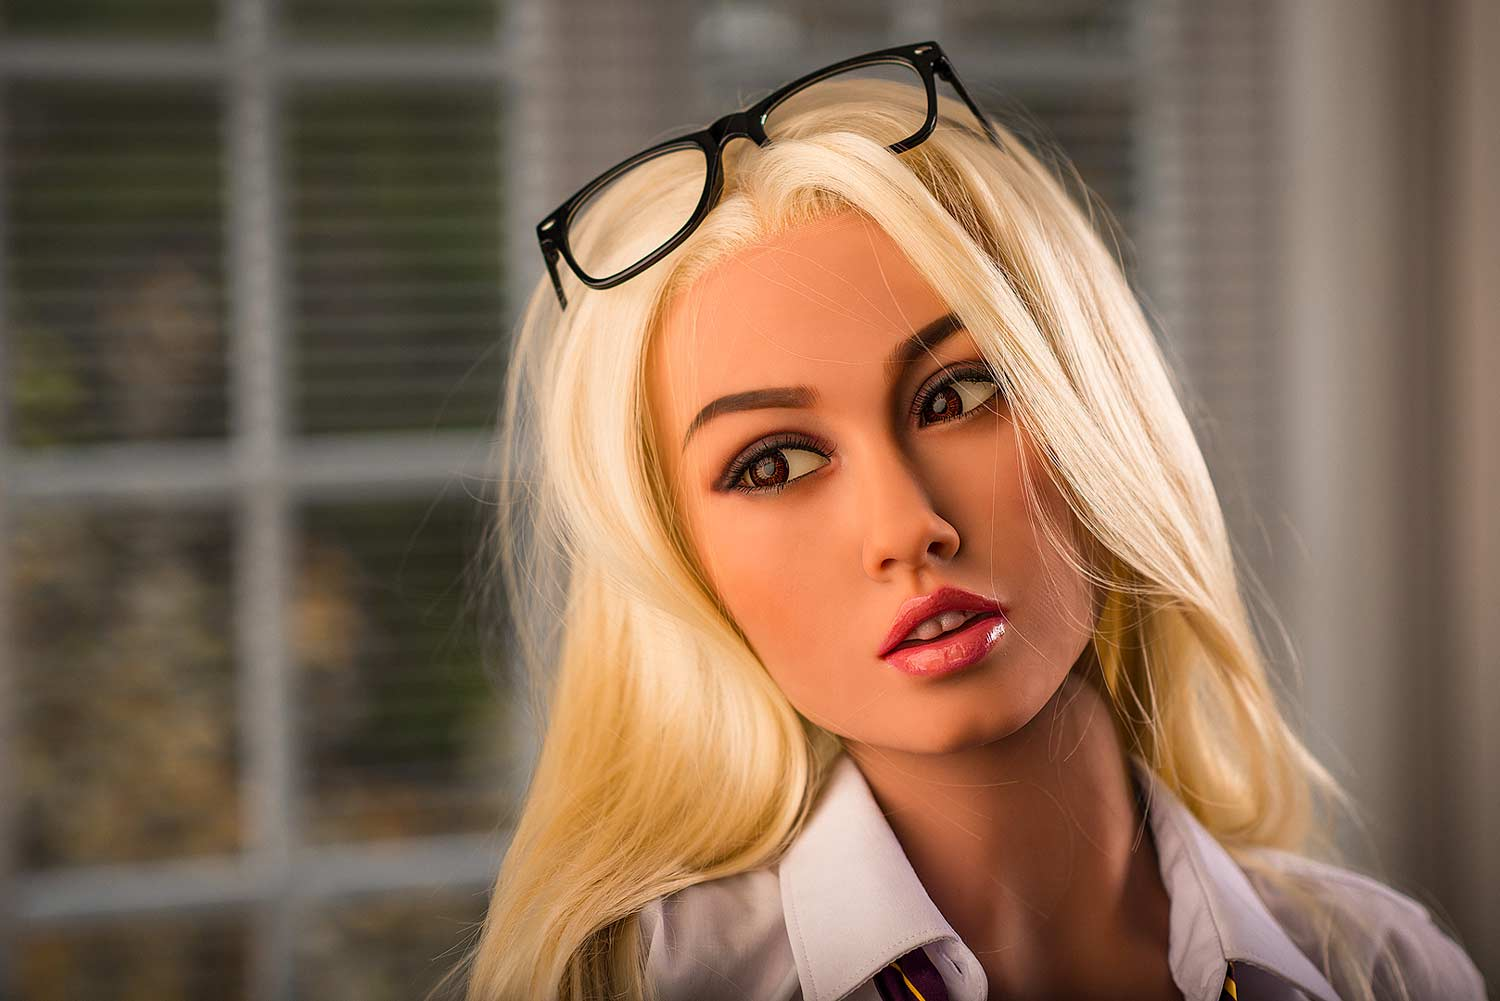 Sex doll with glasses on head